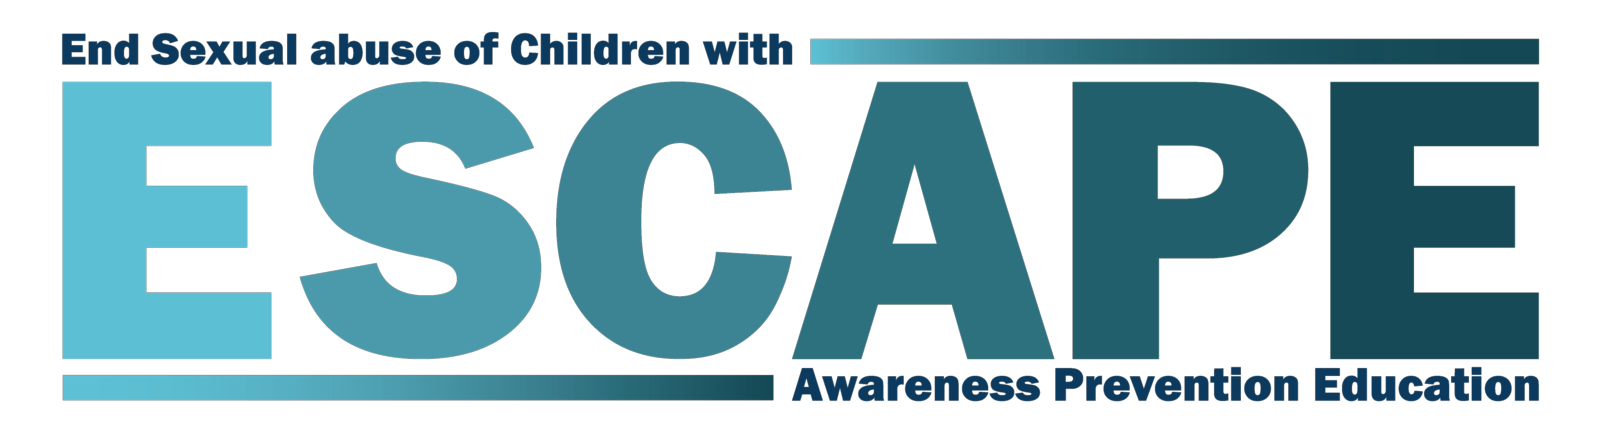 ESCAPE Program Logo: End Sexual abuse of Children with Awareness, Prevention and Education